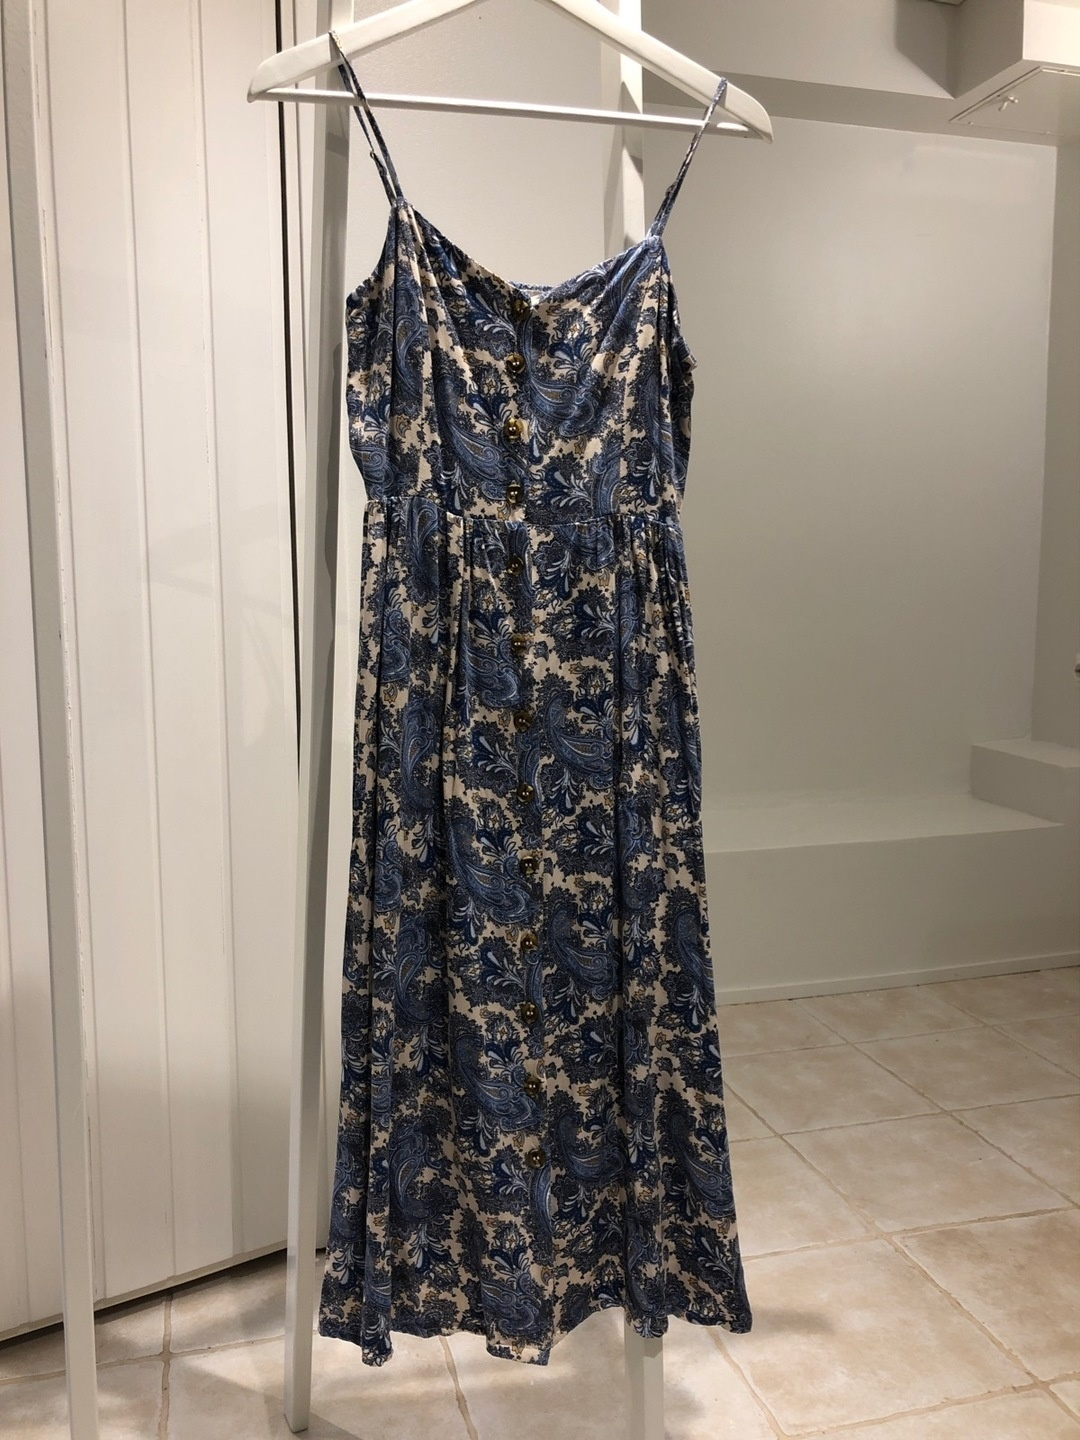 Women's dresses - H&M photo 1